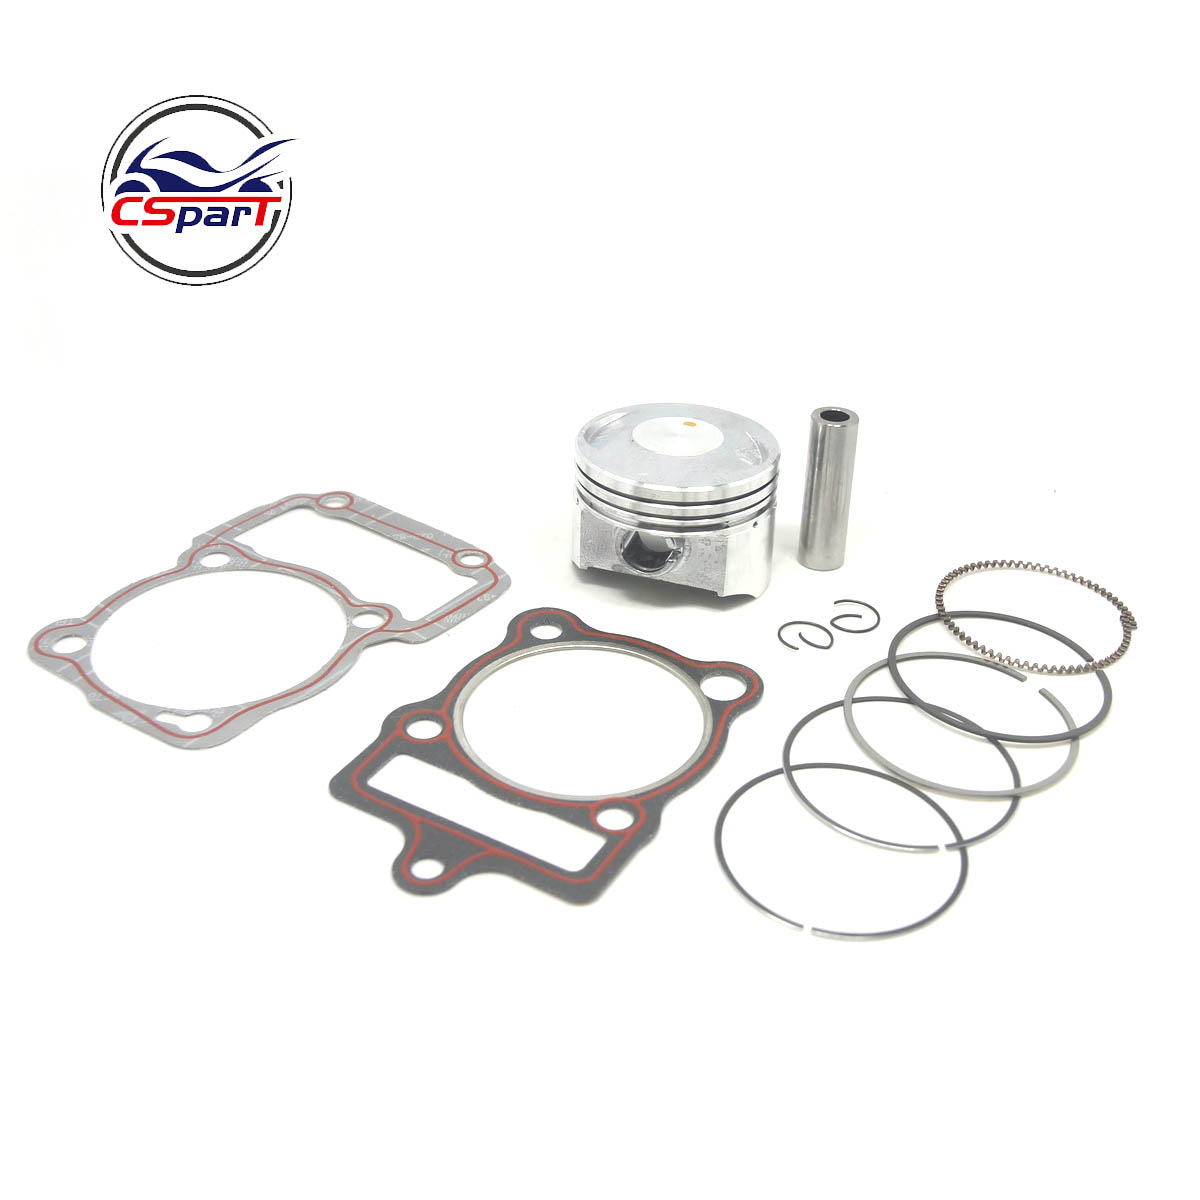 67mm 16mm Lifan  Zongshen Loncin CG 250CC CG250 250 Piston Ring Gasket Air Cooled ATV Quad Dirt Bike Motorcycle